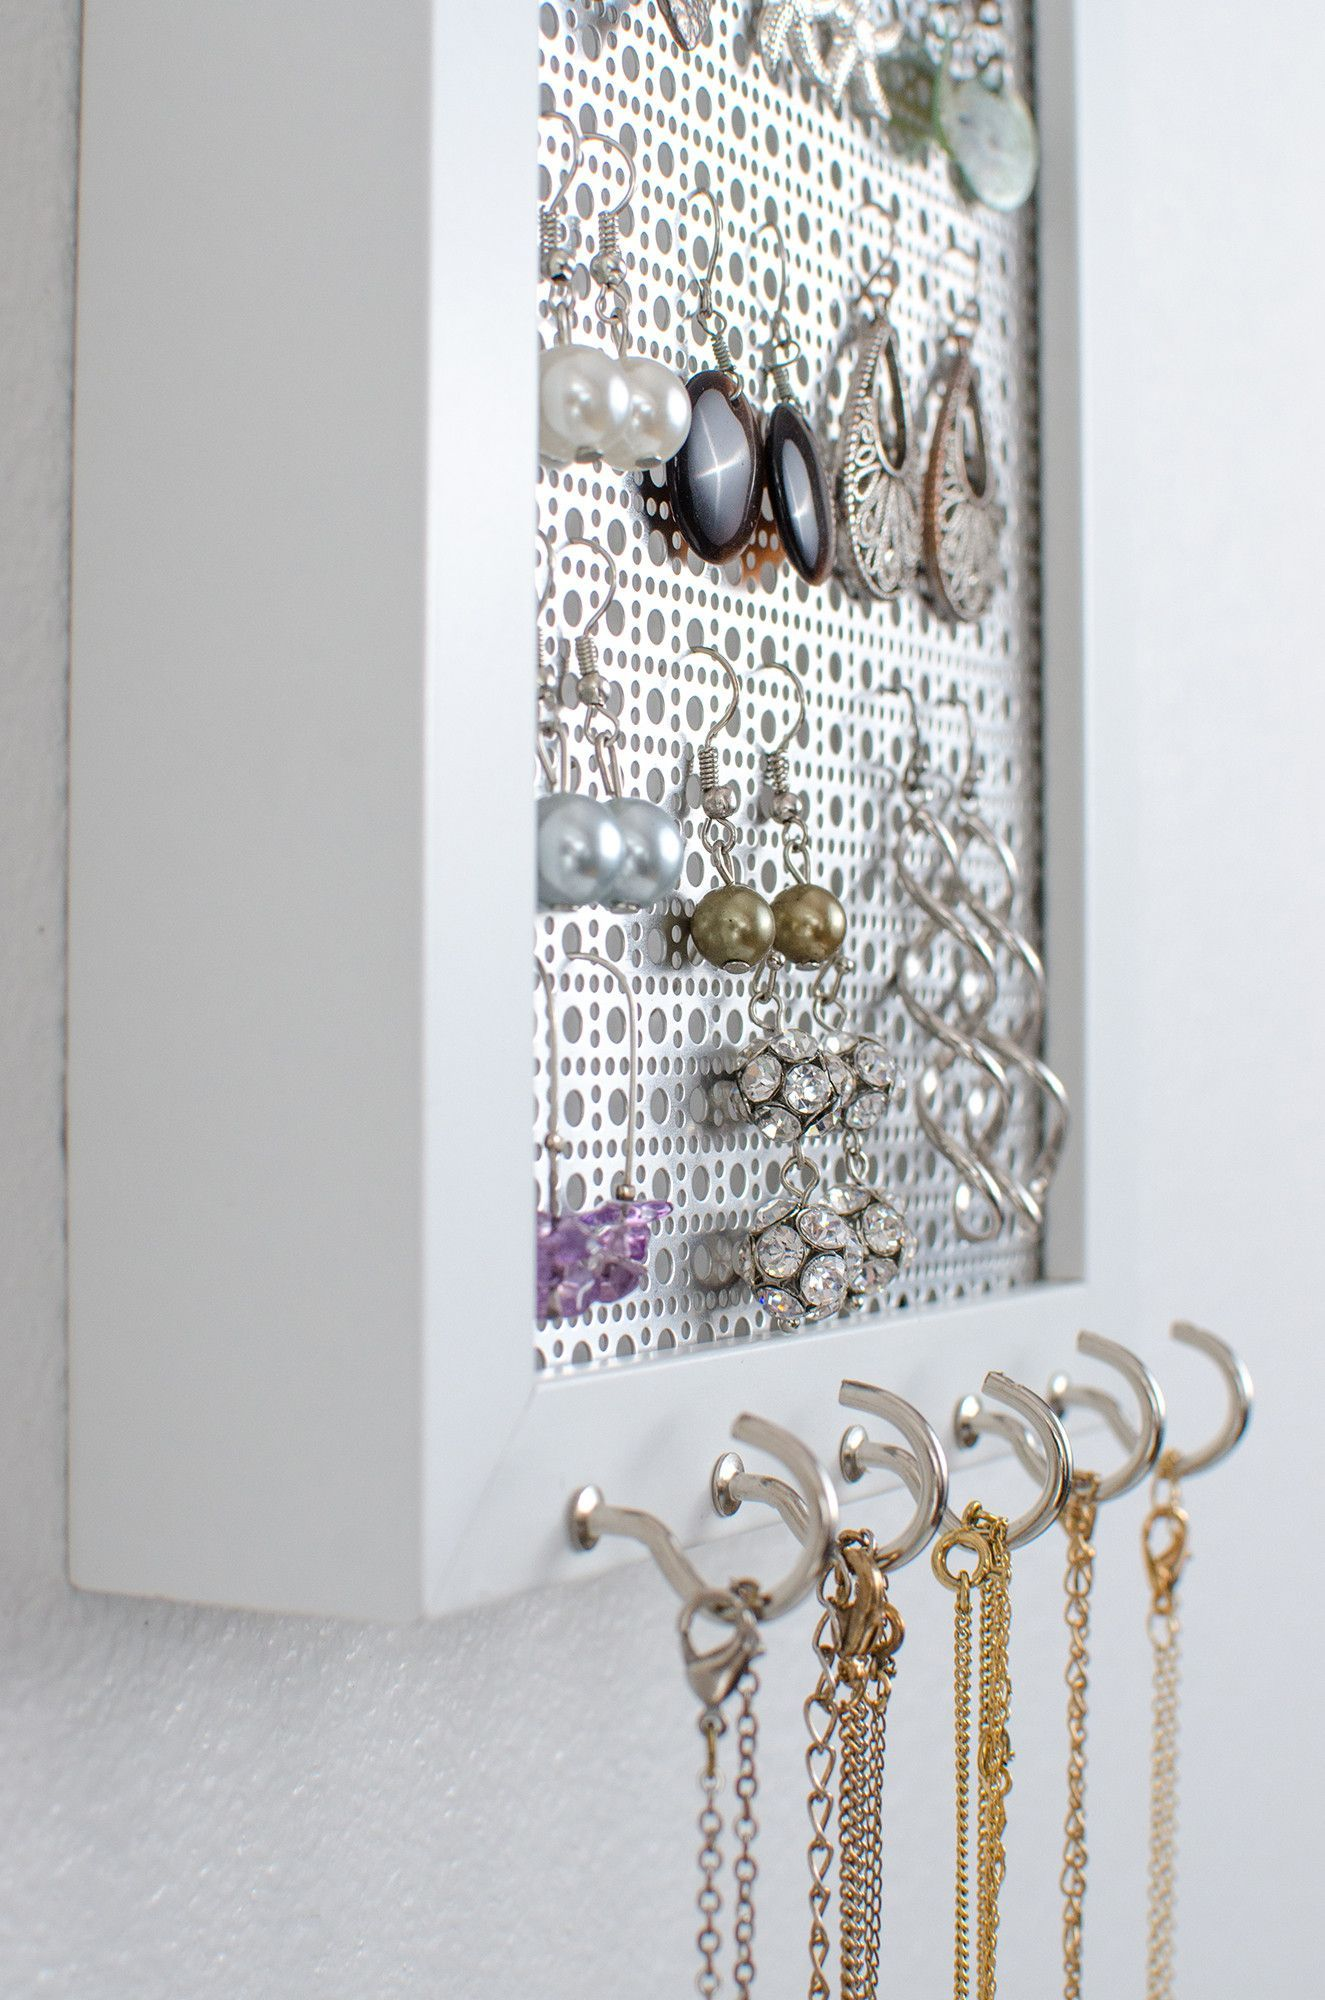 Hook Earring Necklaces Organizer 5x7 White Frame Metal Screen